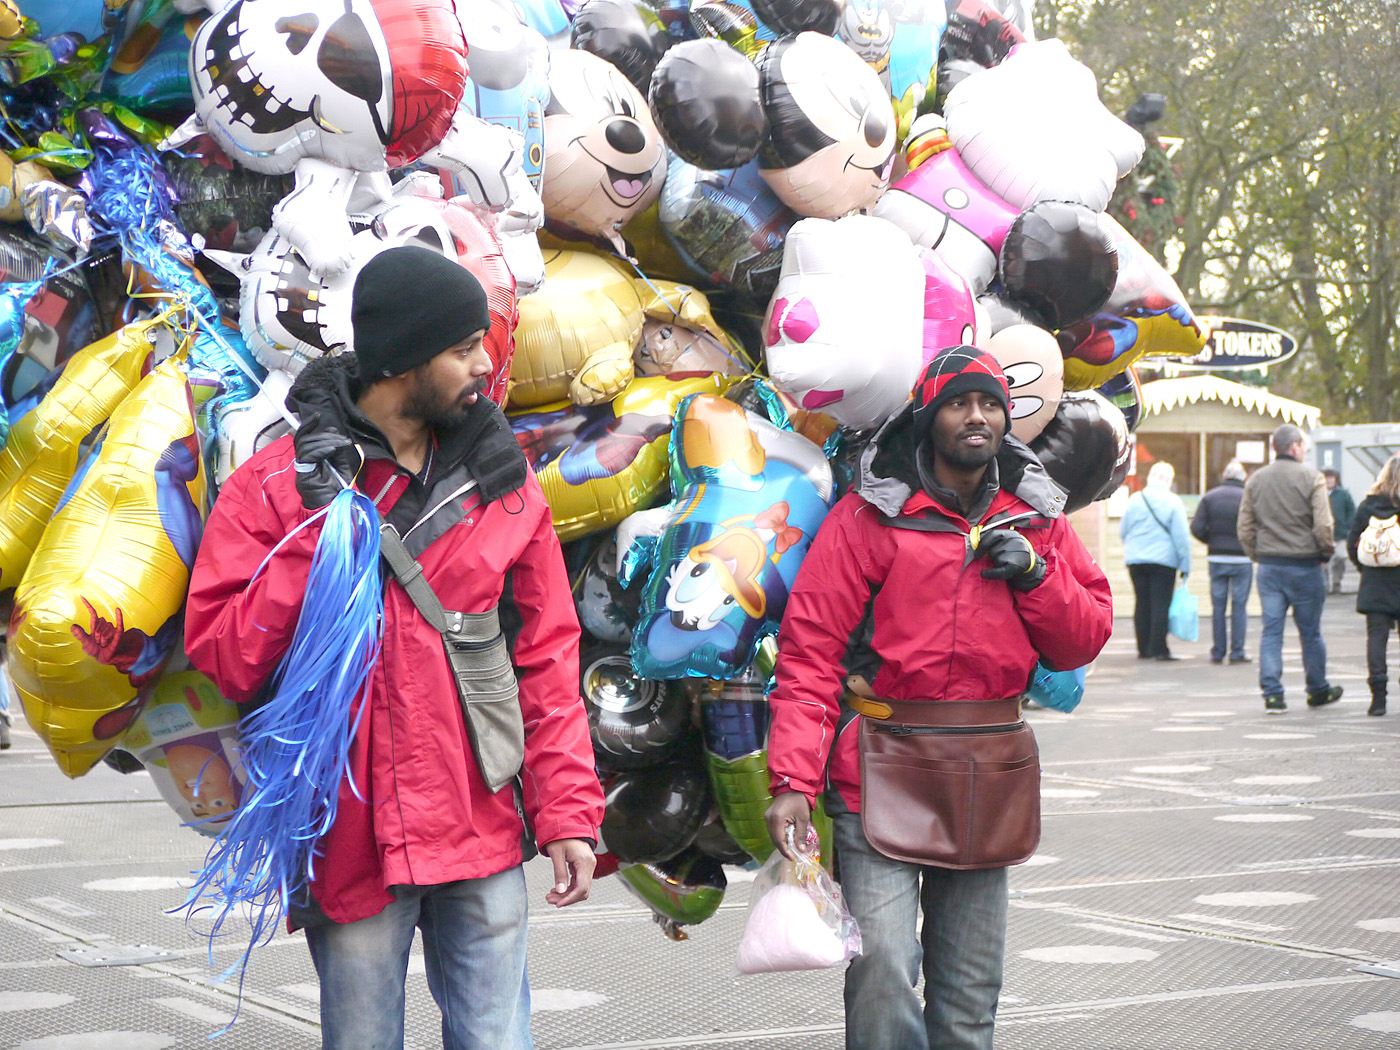 THE BALLOON SELLERS by Dave Taylor.jpg